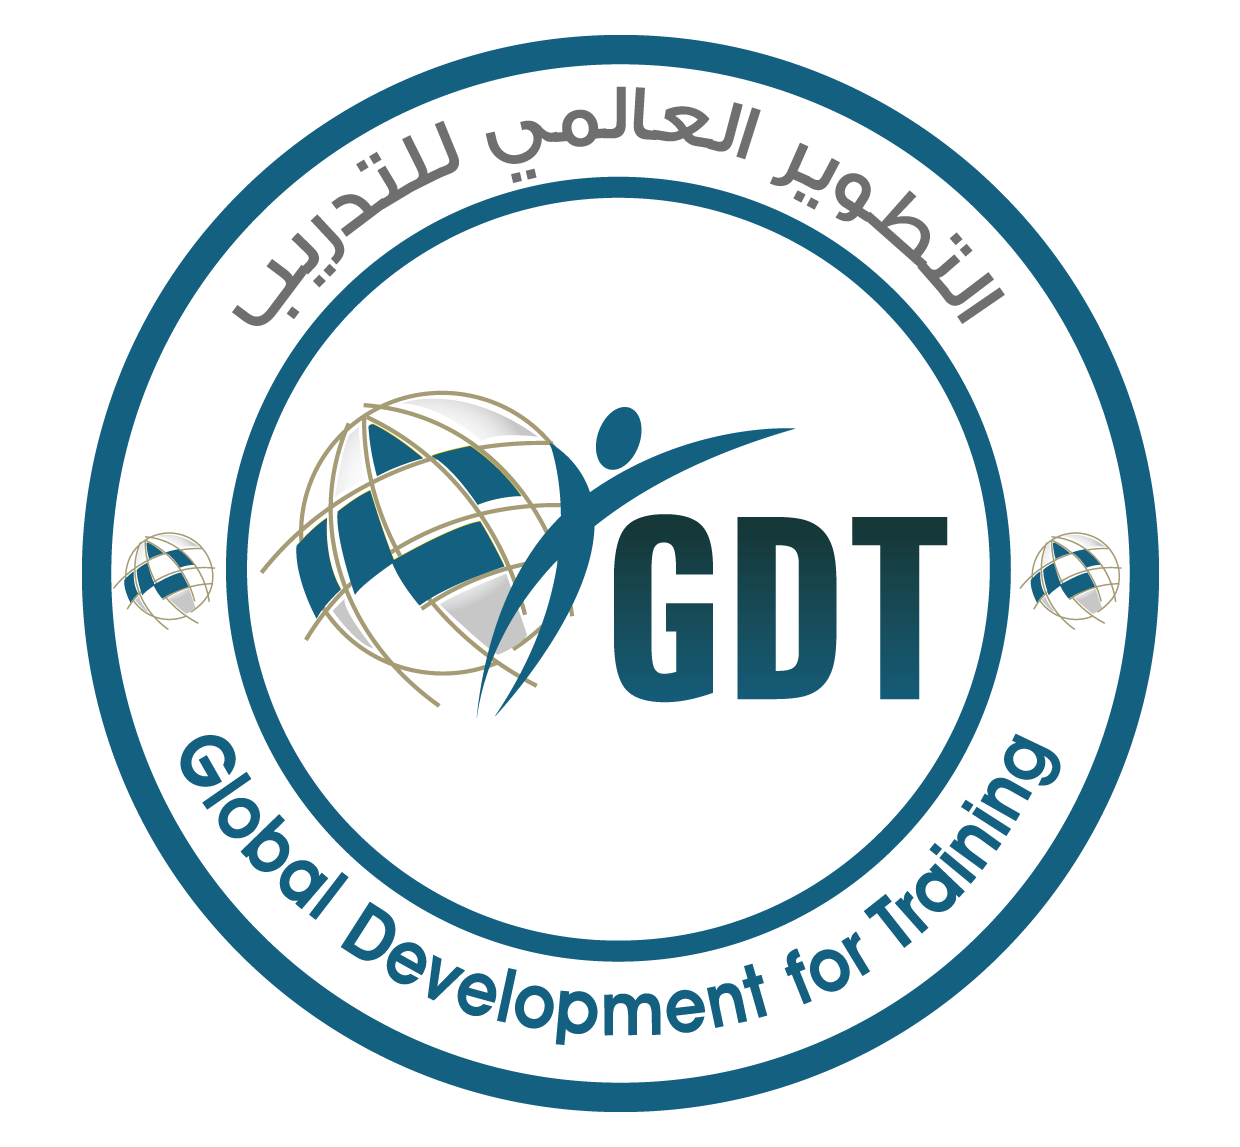 More about Global Development for Training